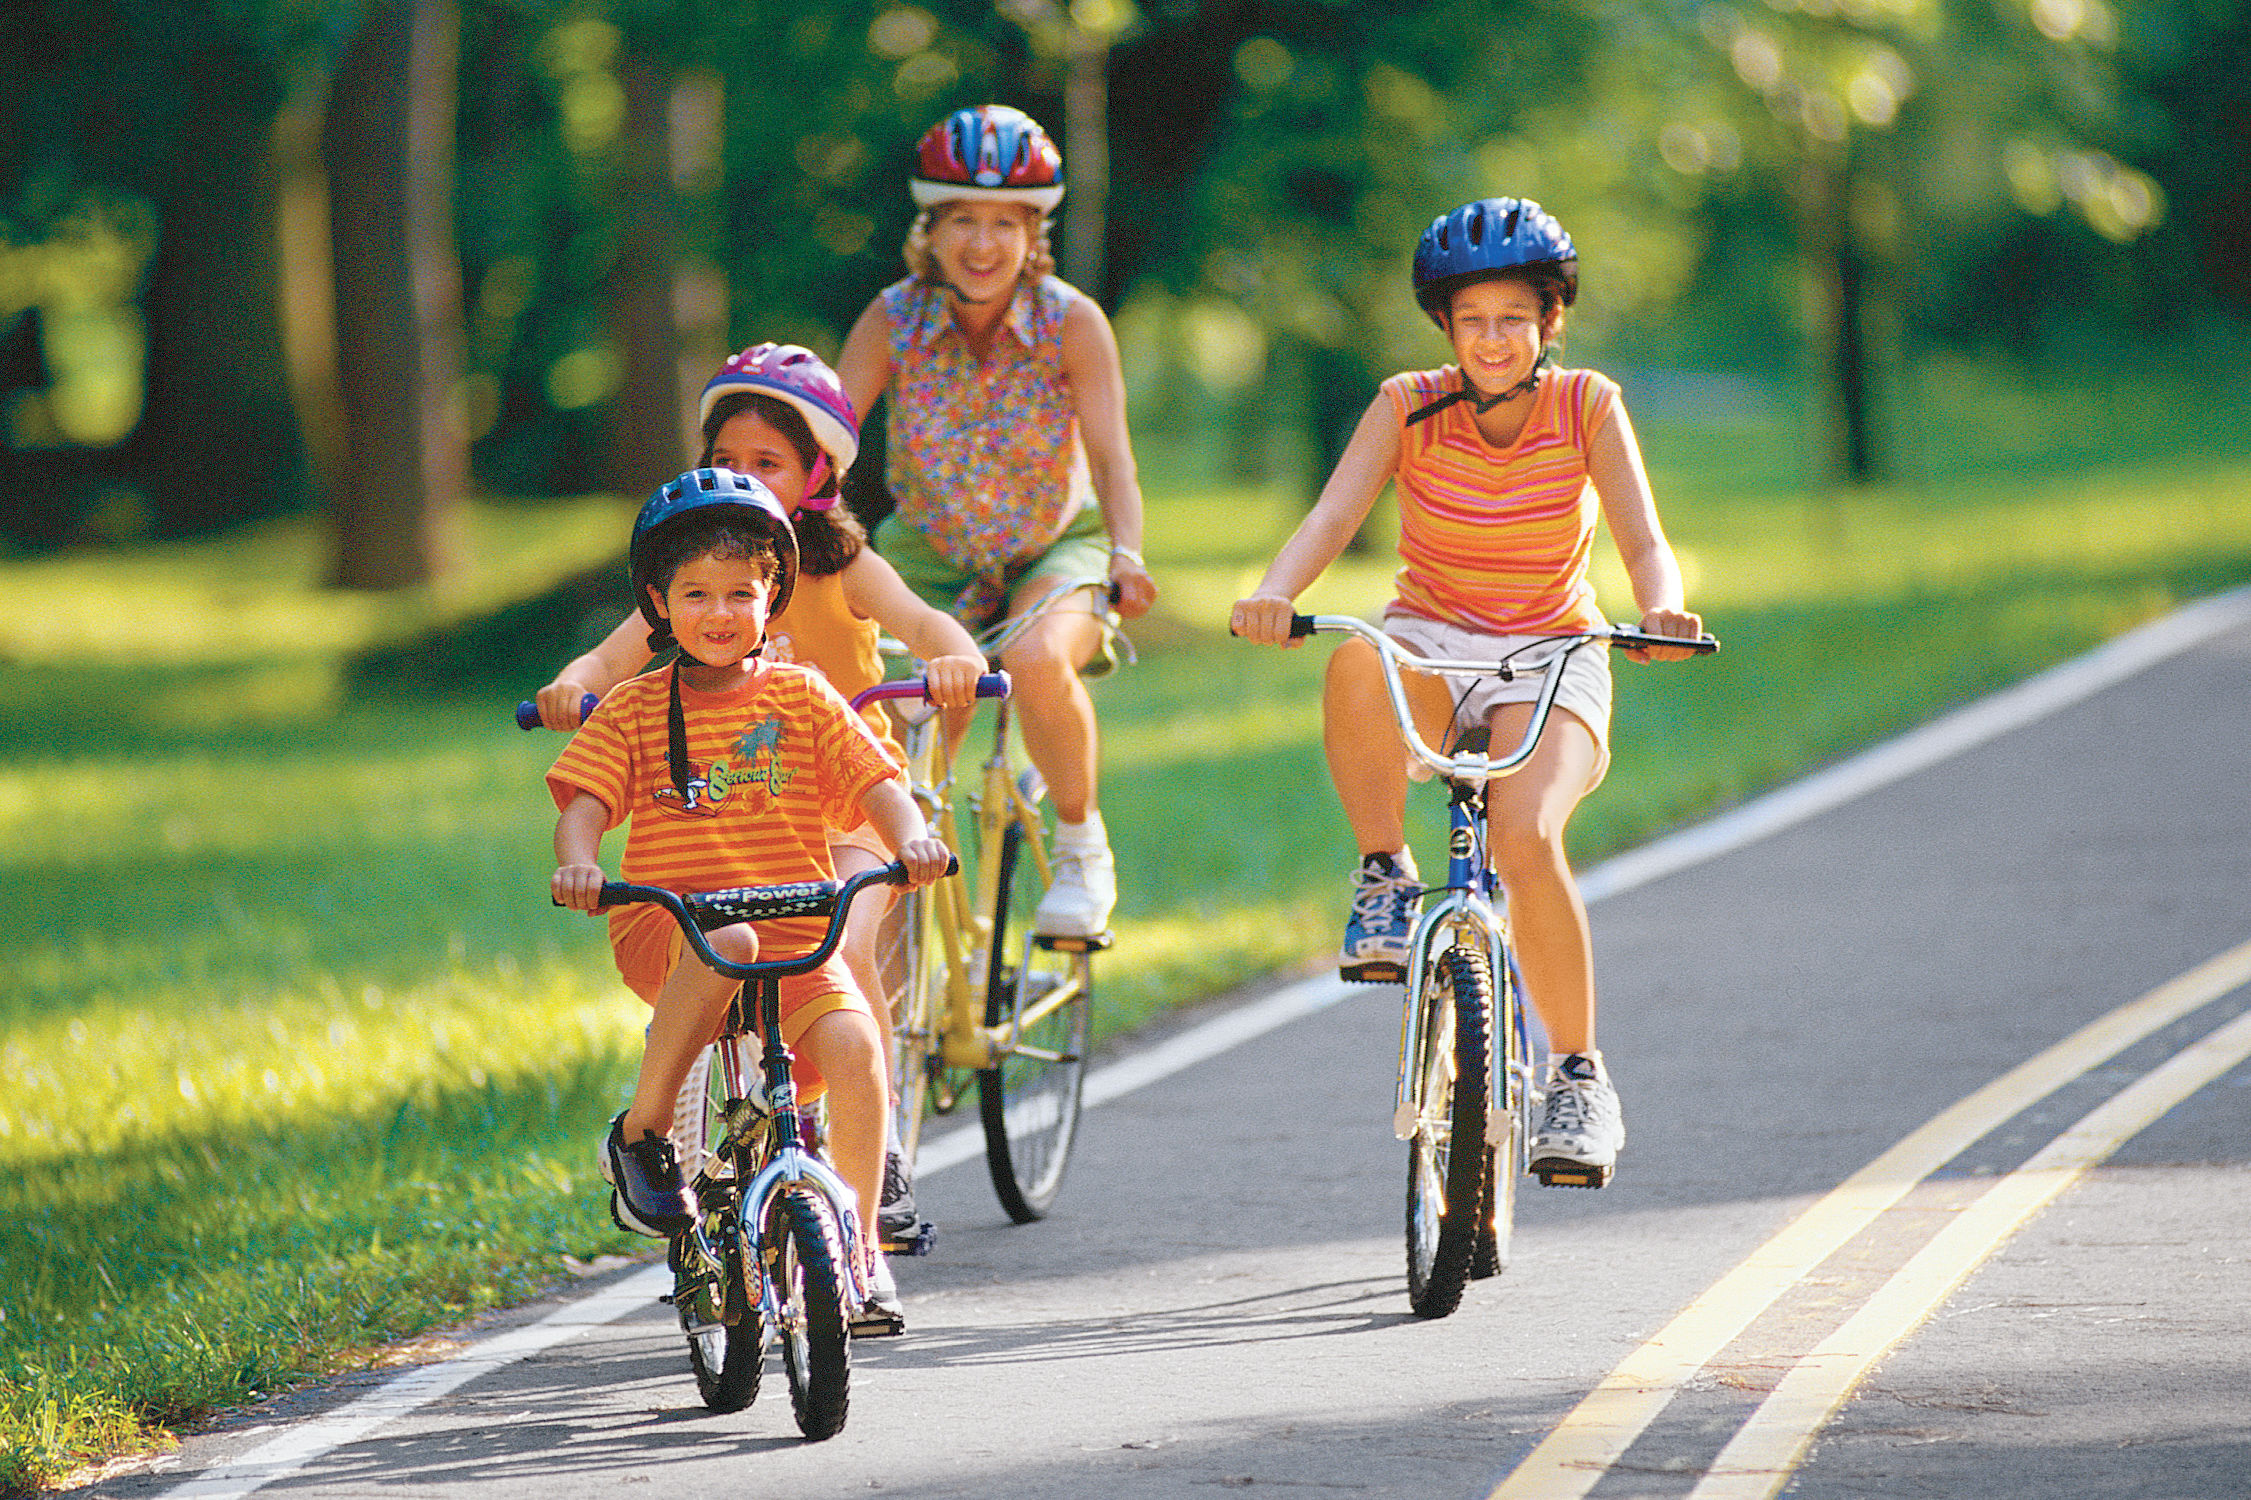 Take Your Family Biking